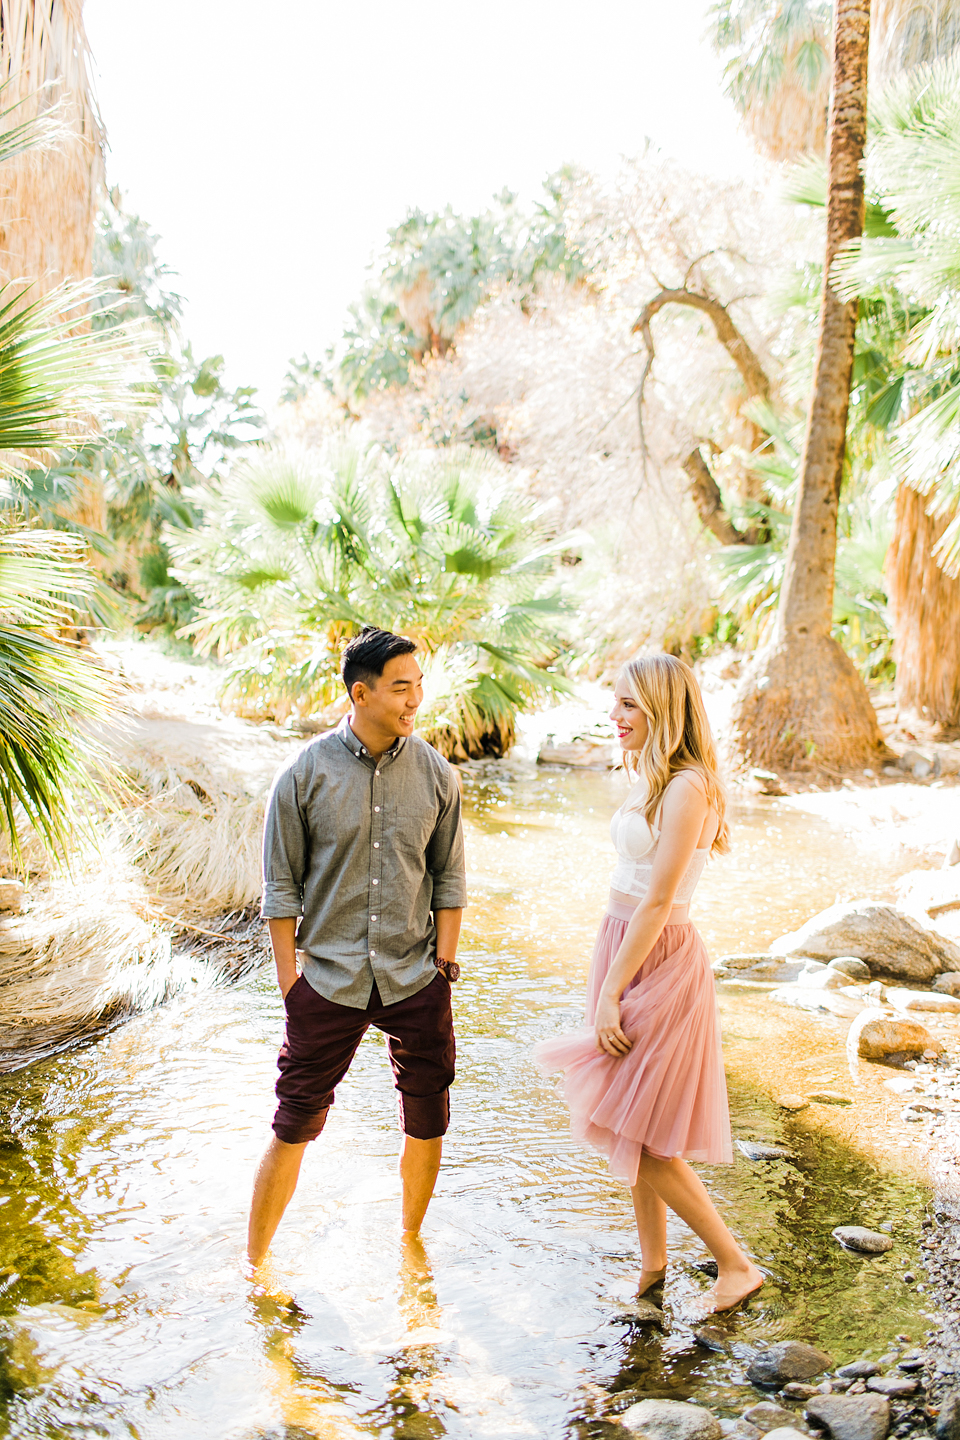 LAUREN AND THOMAS - PALM CANYON, CALIFORNIA